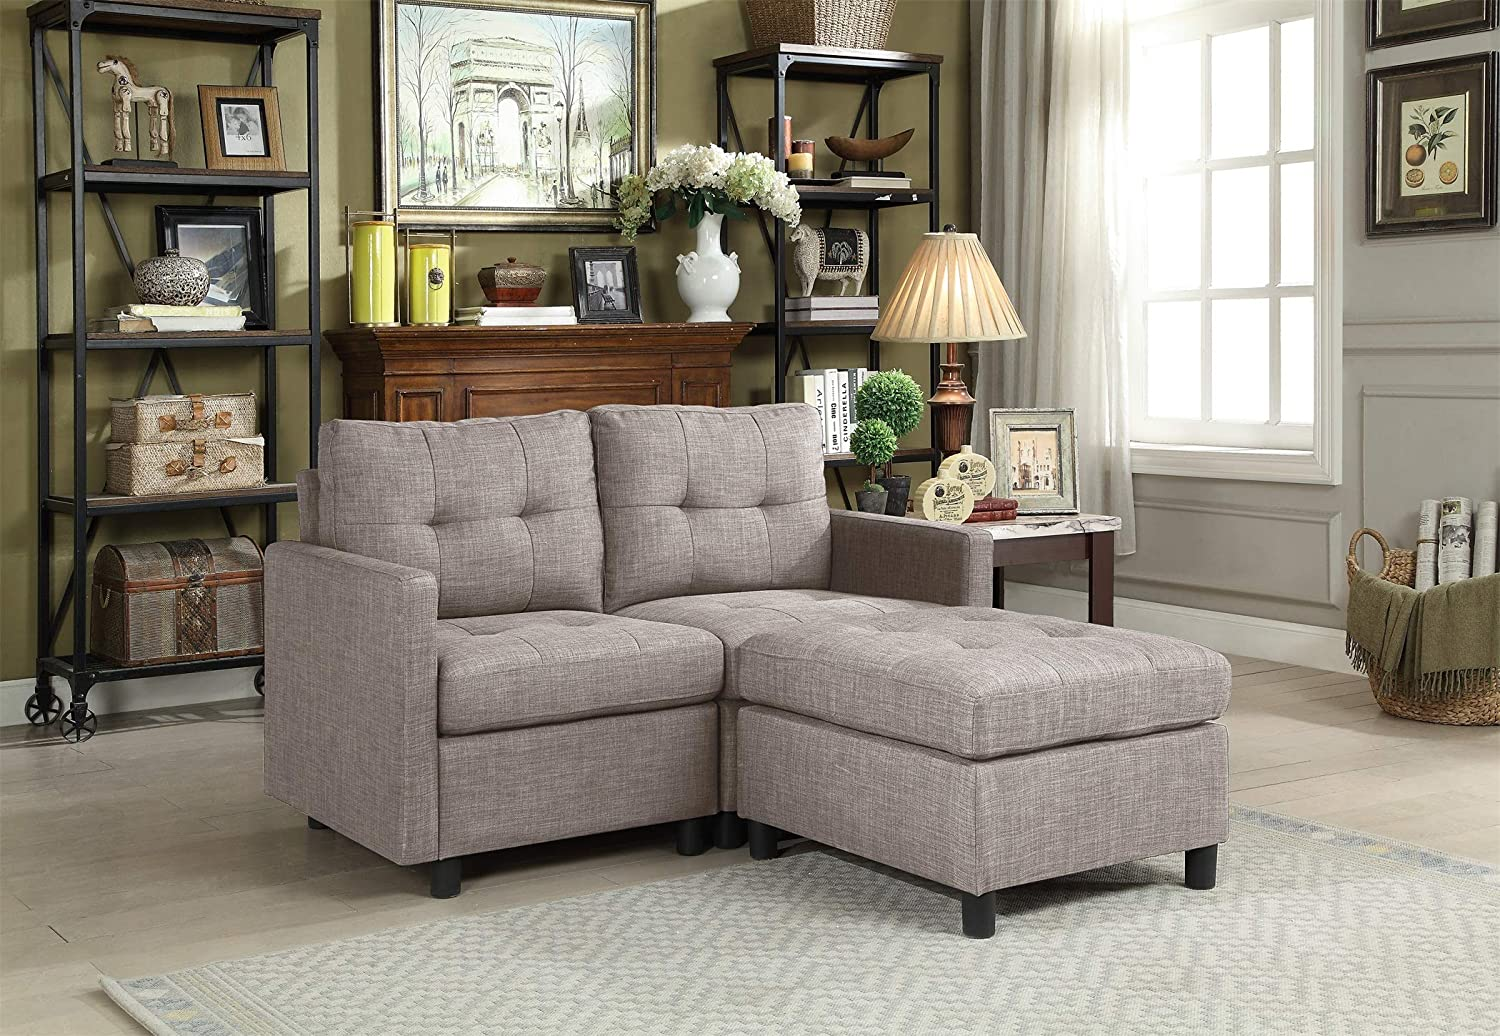 Amazon.com: Modular 3-Piece Sectional Sofa Loveseat with Chaise ...